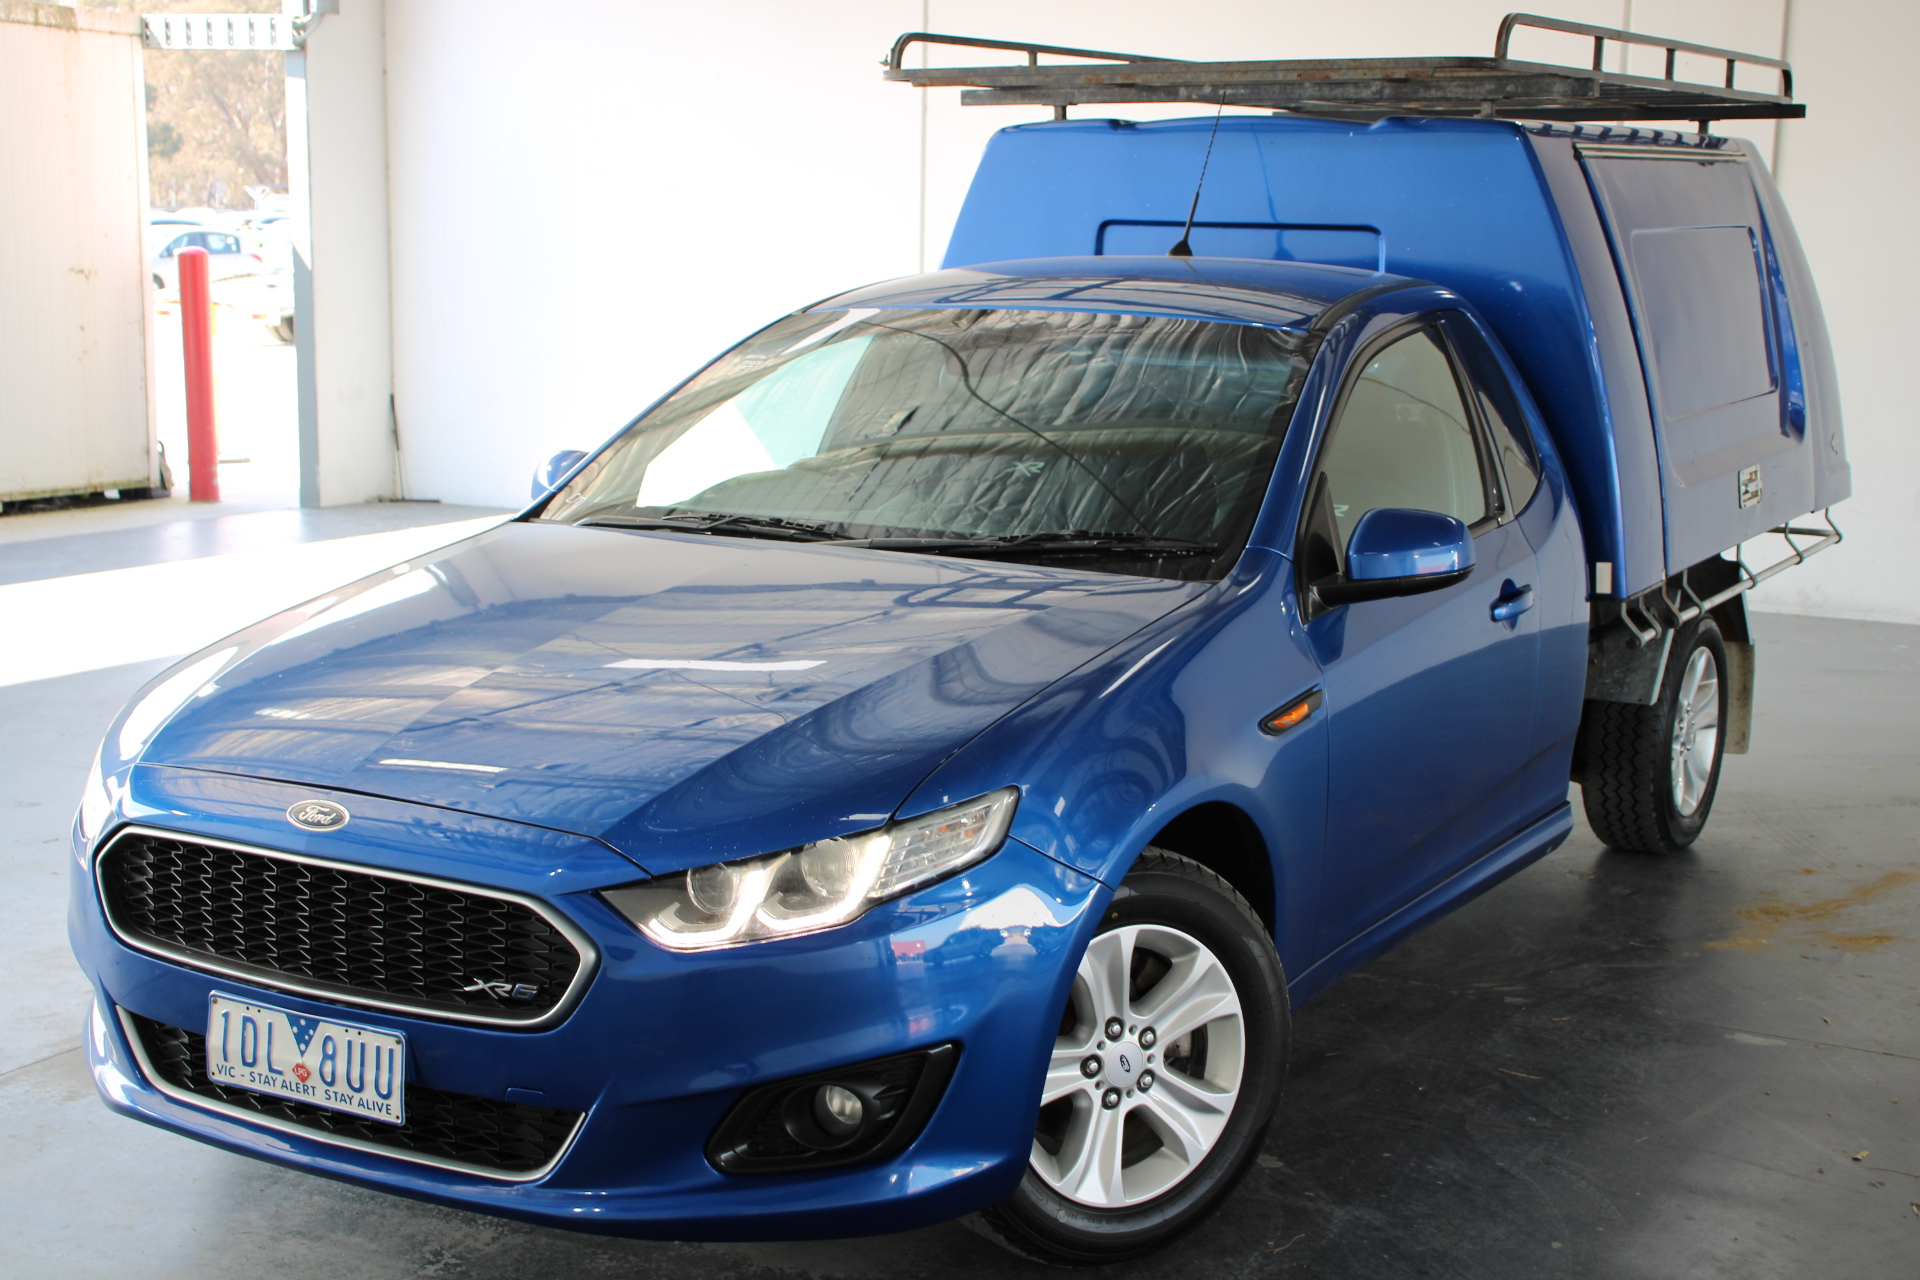 2014 Ford Falcon XR6 FG X Automatic Cab Chassis (RWC Issued 15-9-21)